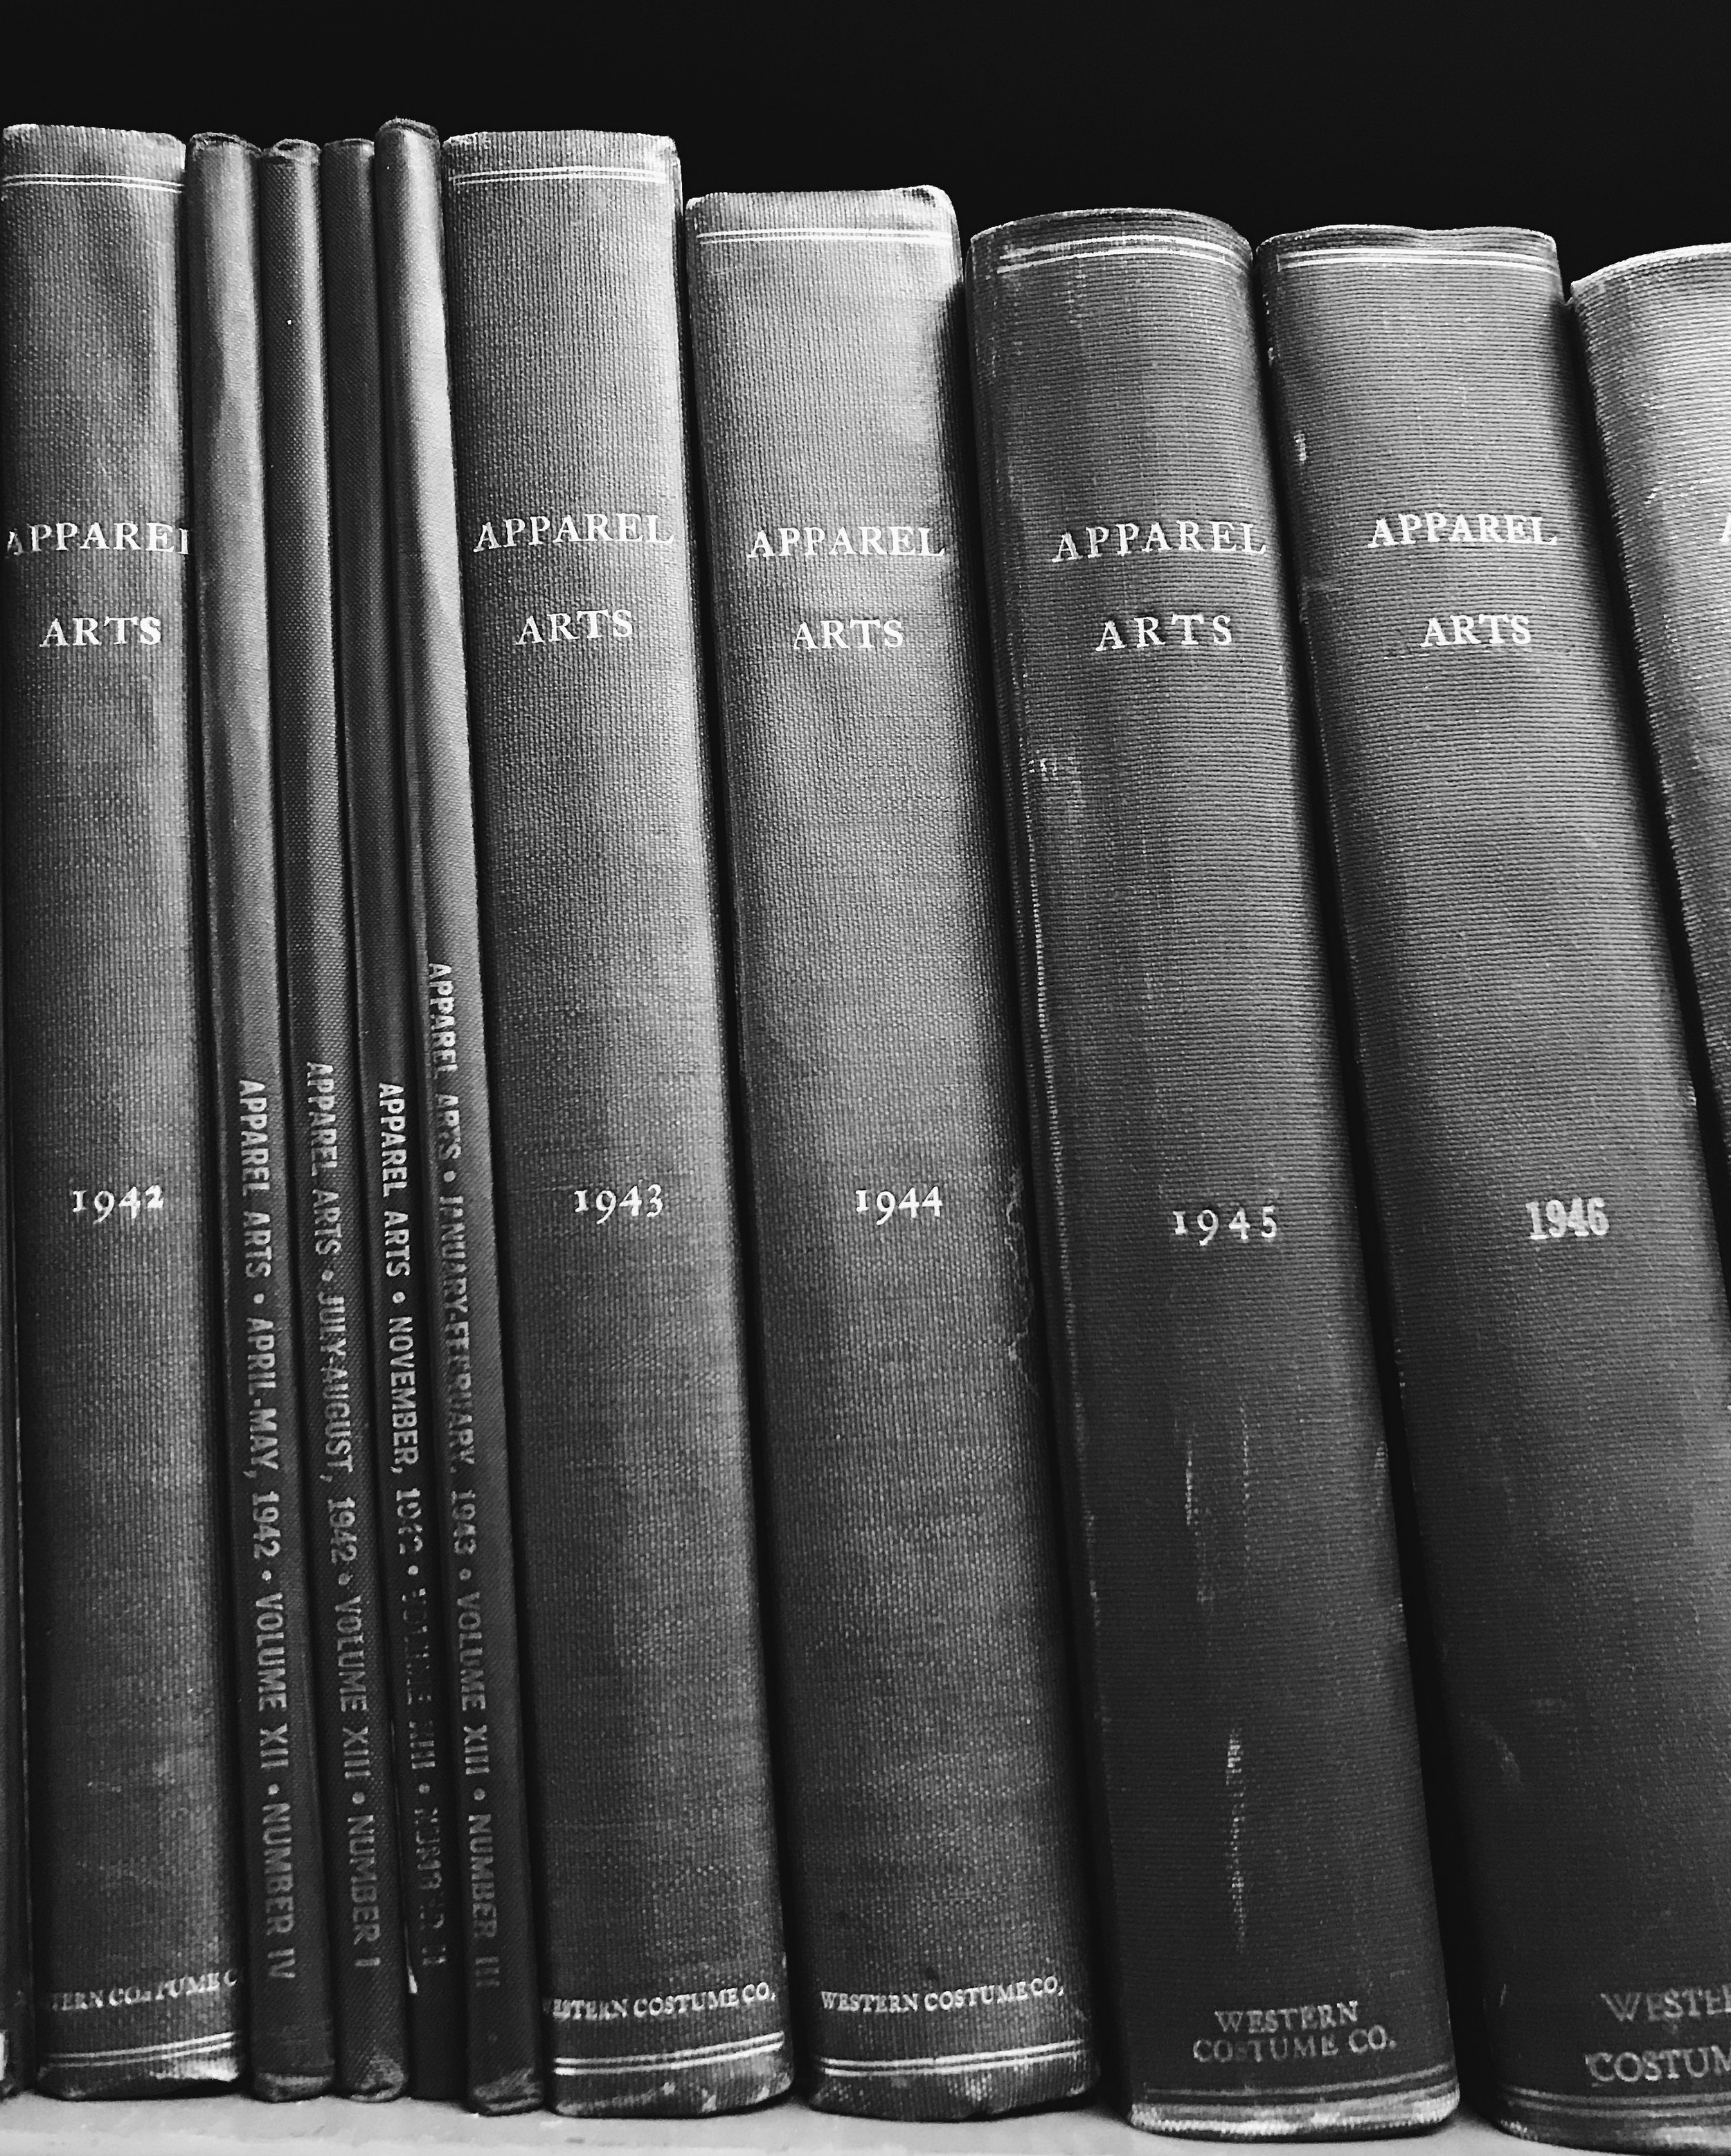 1940s volumes of  Apparel Arts  magazine (predecessor to  GQ ) in Western Costume's research library.  Photo via  Finding Lost Angeles  (2018).